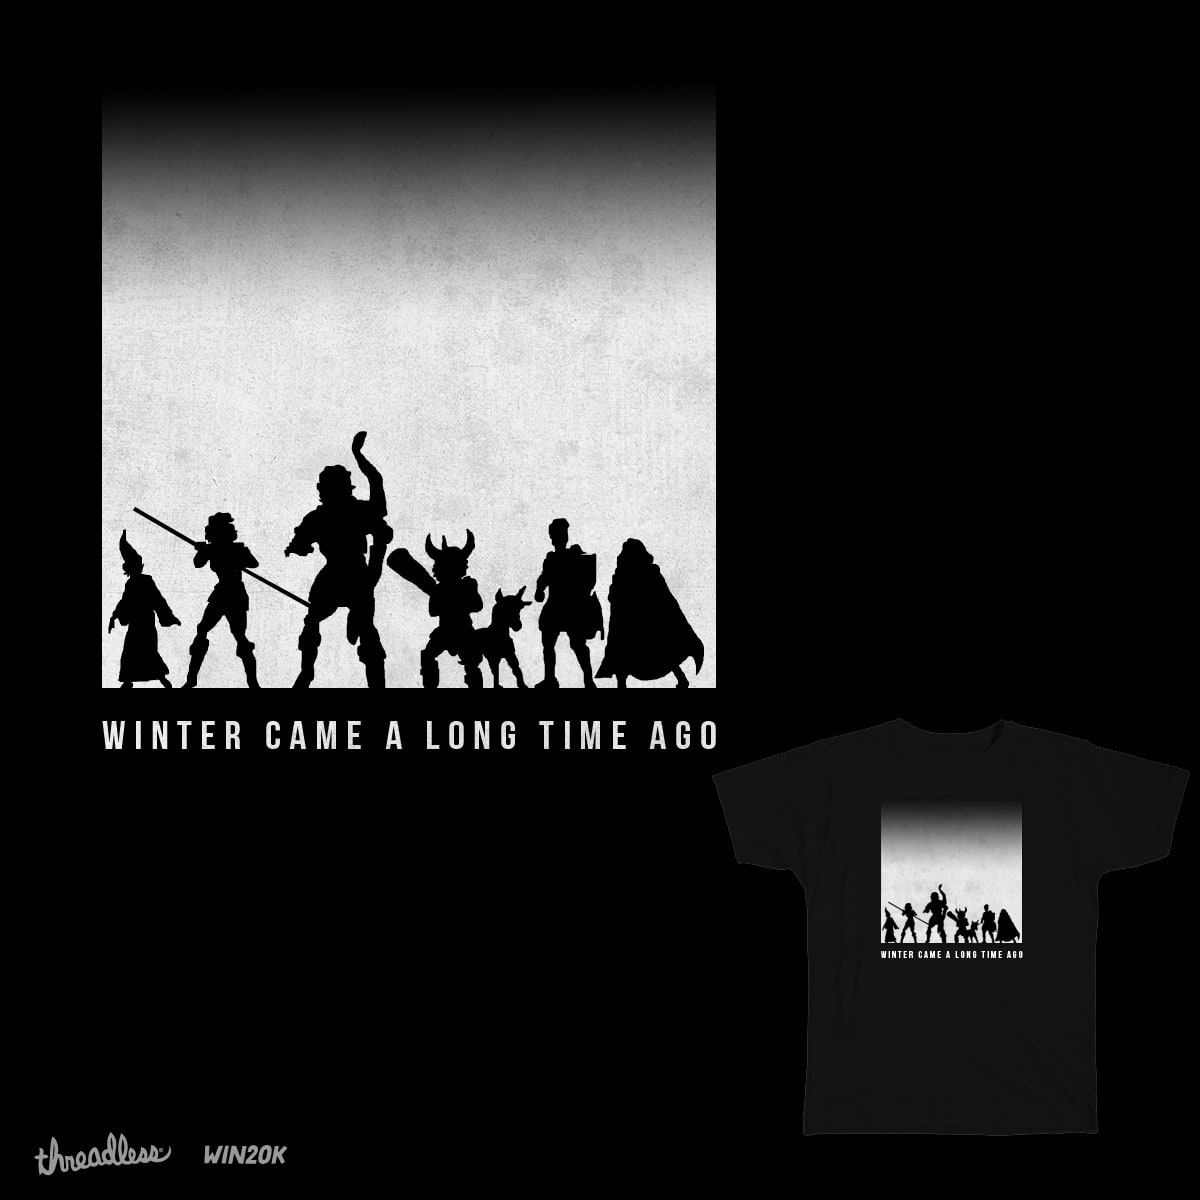 Winter Came a Long Time Ago by dyljos on Threadless